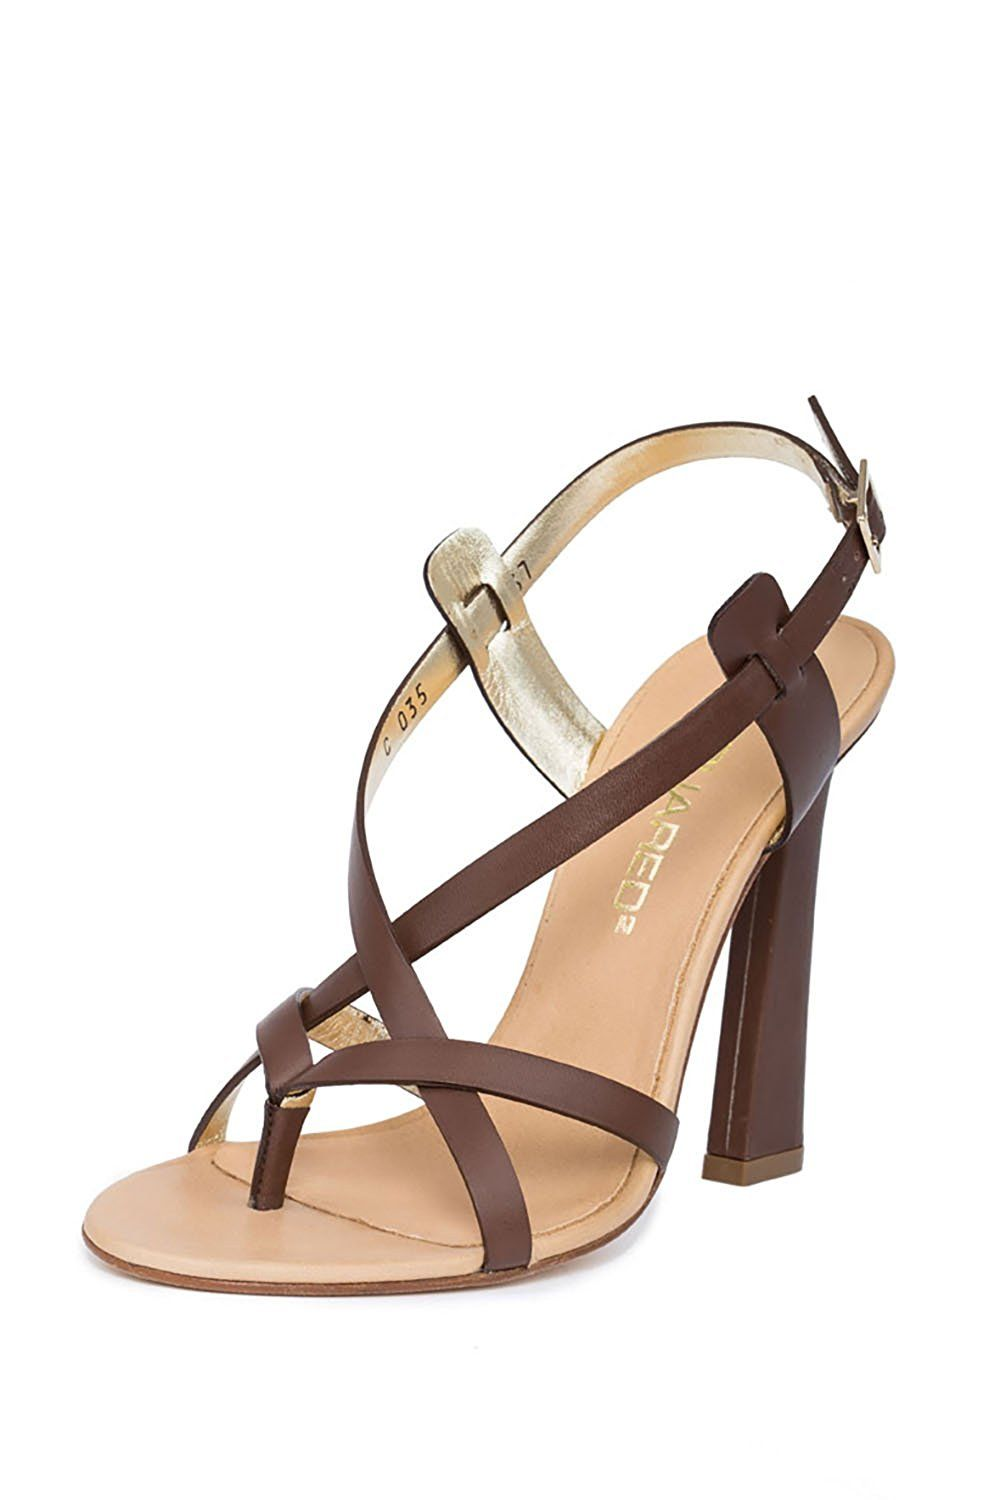 6b410aaad0e004 Dsquared2 Women Slingback Strappy Sandals Leather High Block Heels Designer  Shoes     For more information